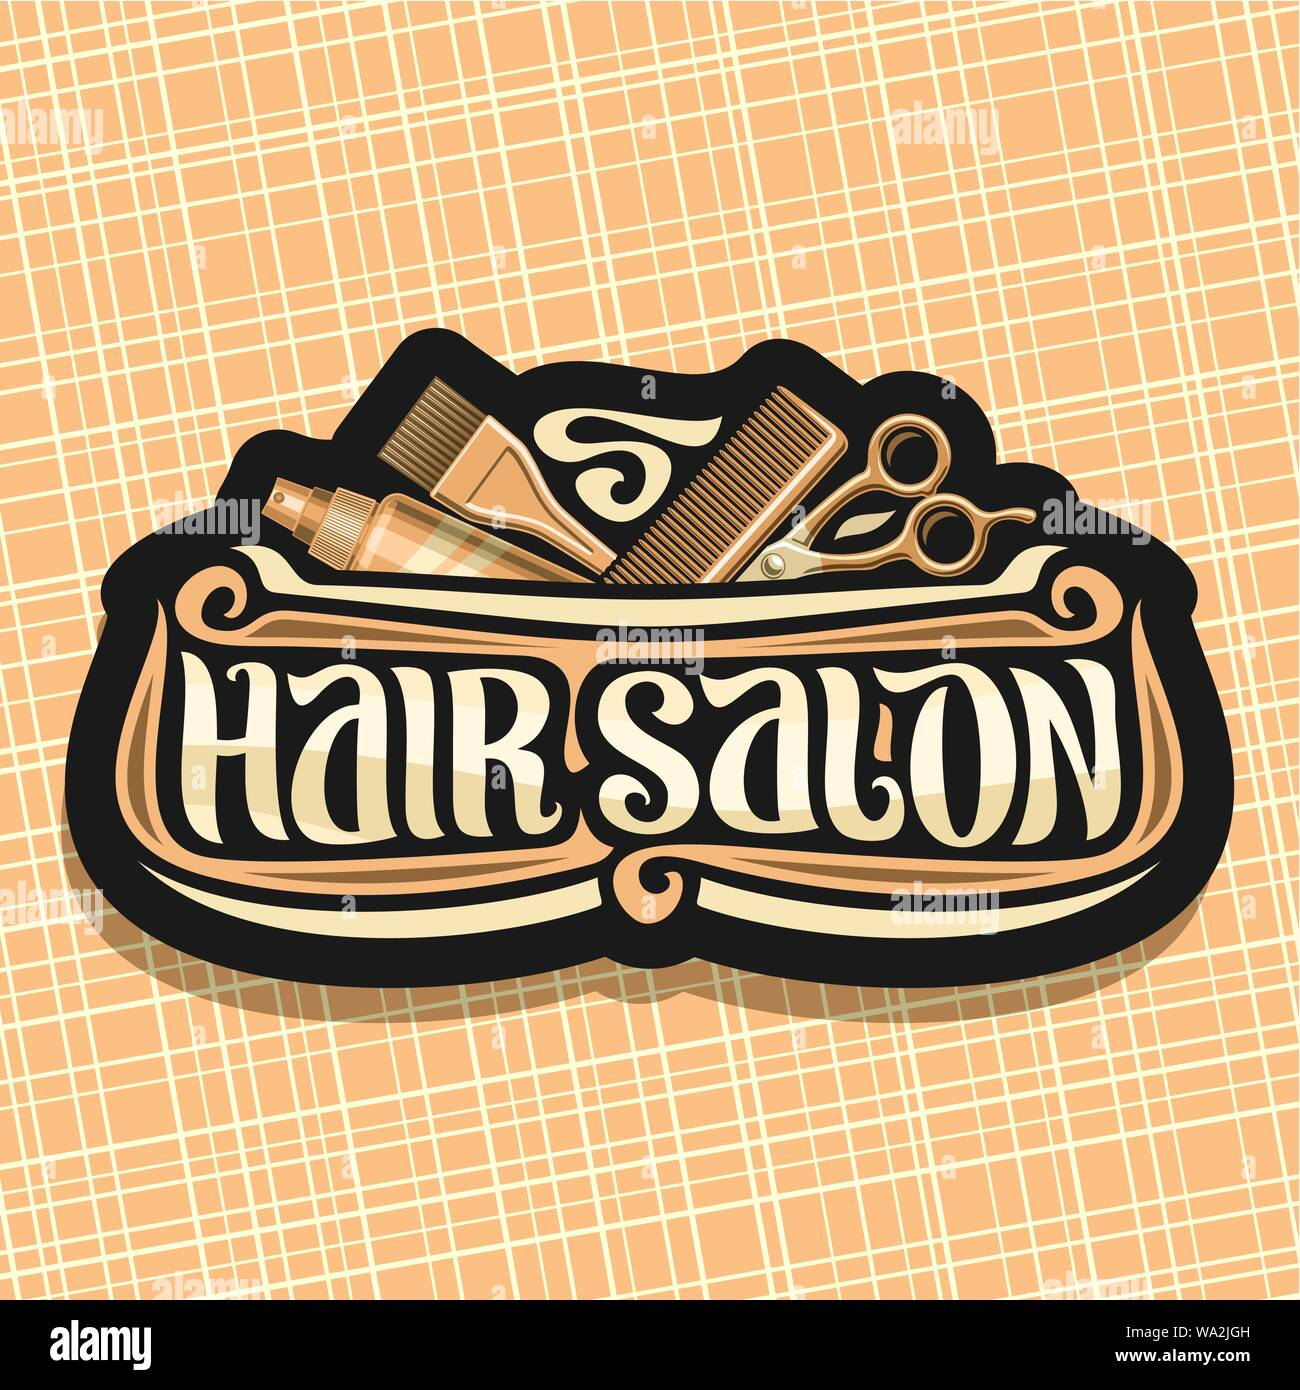 Vector Logo For Hair Salon Black Signage With Hairdresser Professional Equipment Original Brush Typeface For Words Hair Salon Design Signboard With Stock Vector Image Art Alamy